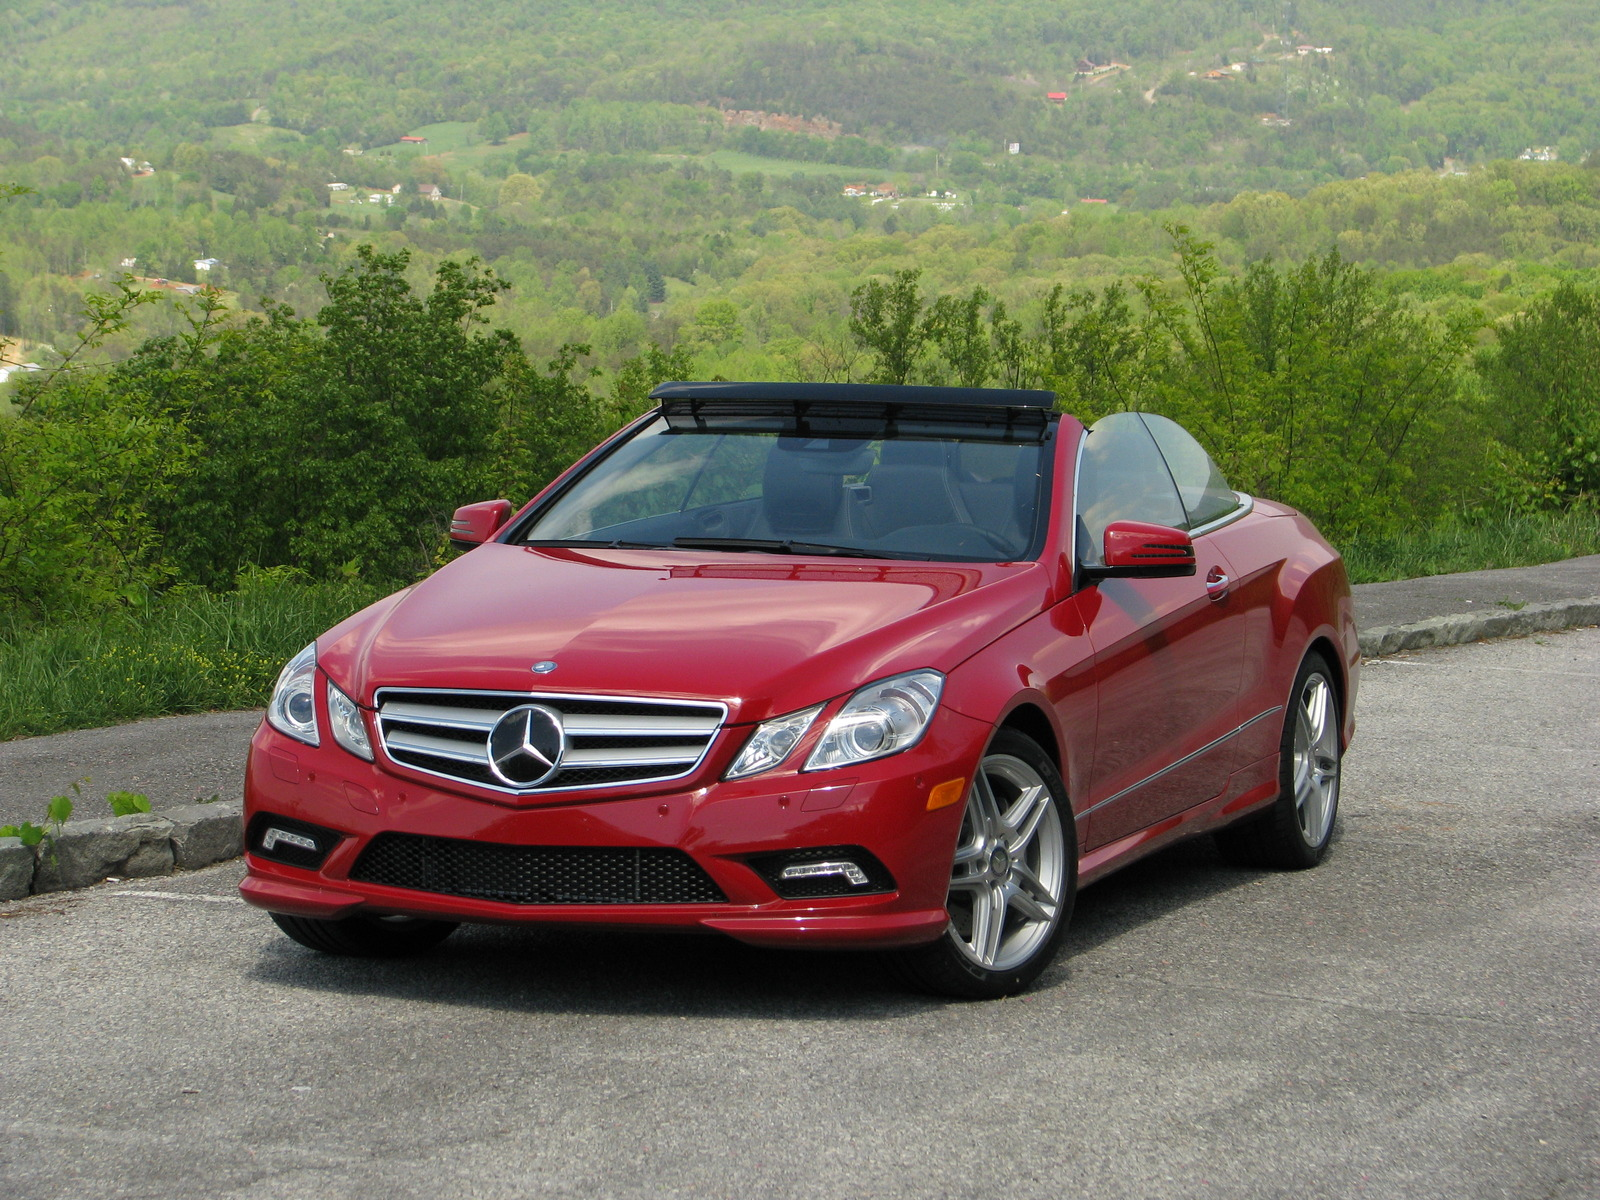 Mercedes benz issues recall for steering problem for Recalls on mercedes benz